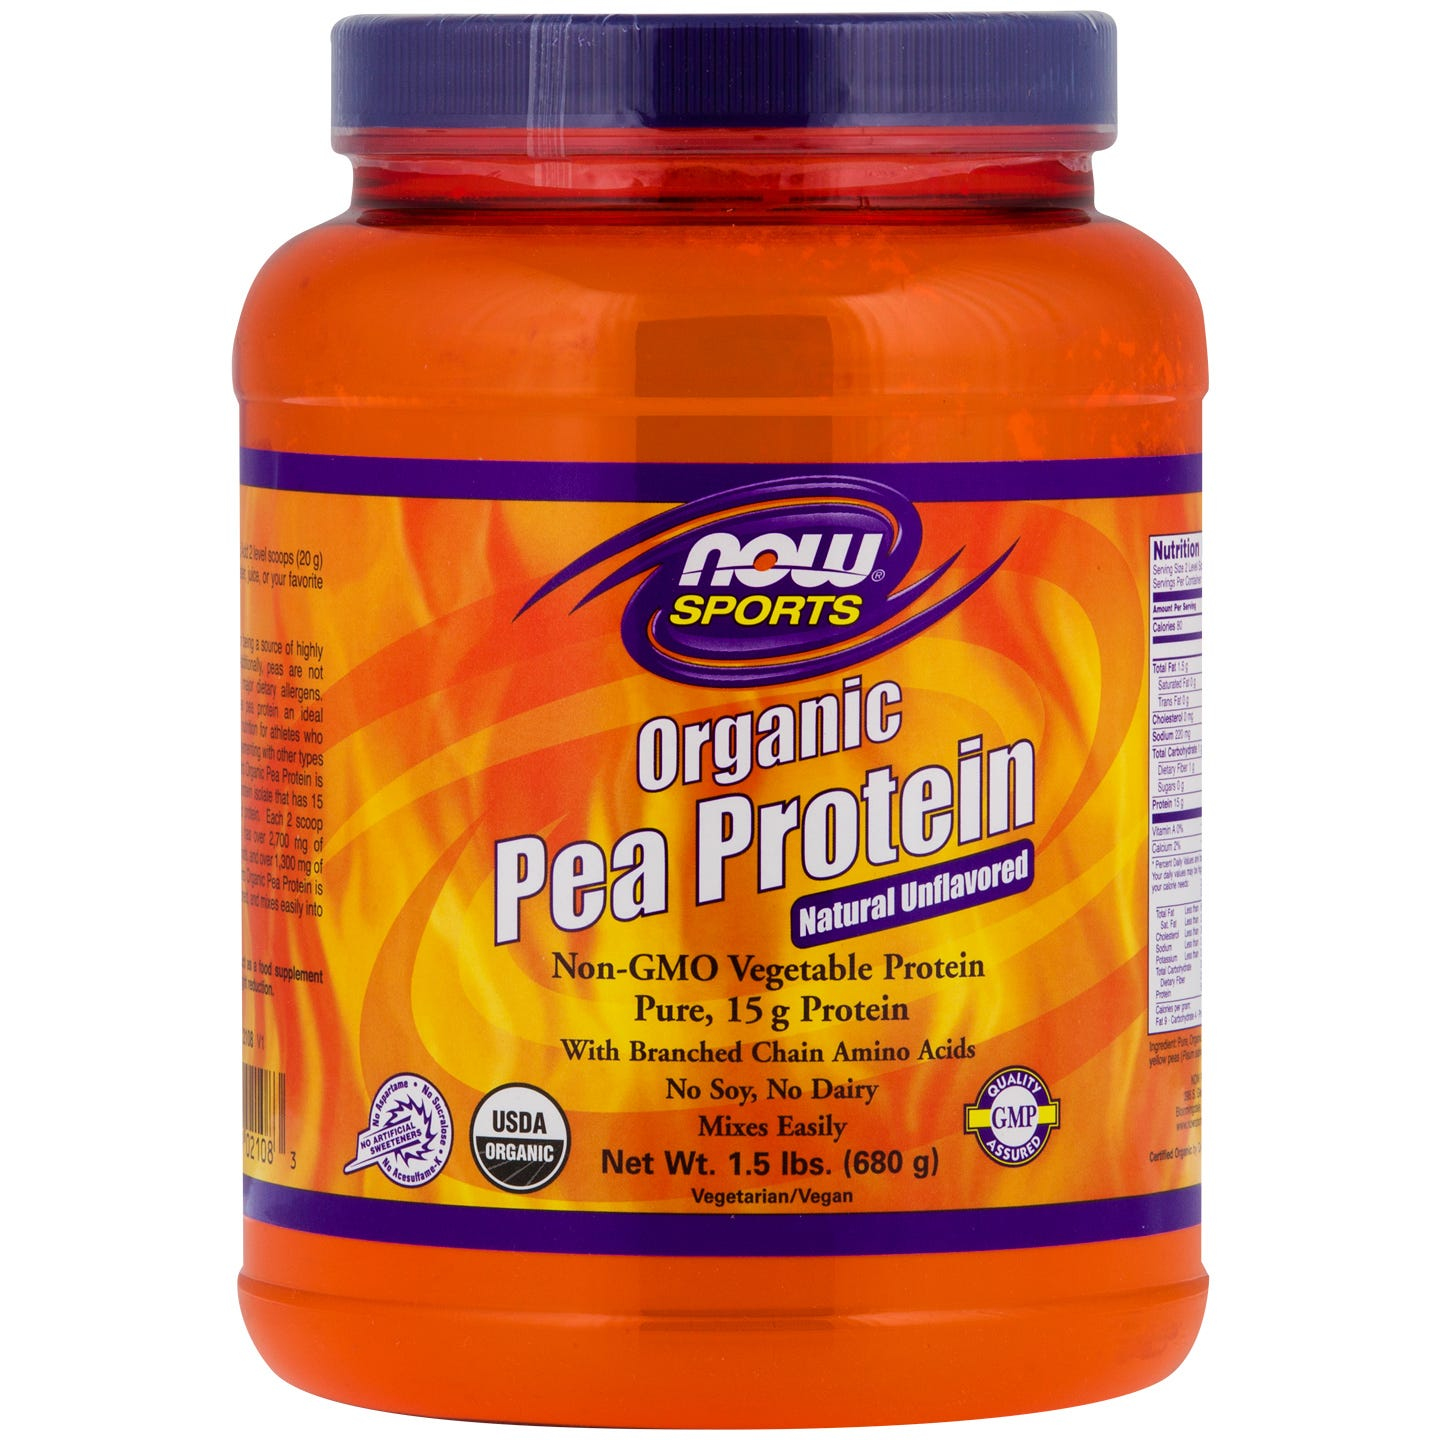 Sports Organic Pea Protein Unflavored 1.5lb, NOW Foods - Rapid Diet Weight Loss Products Shop